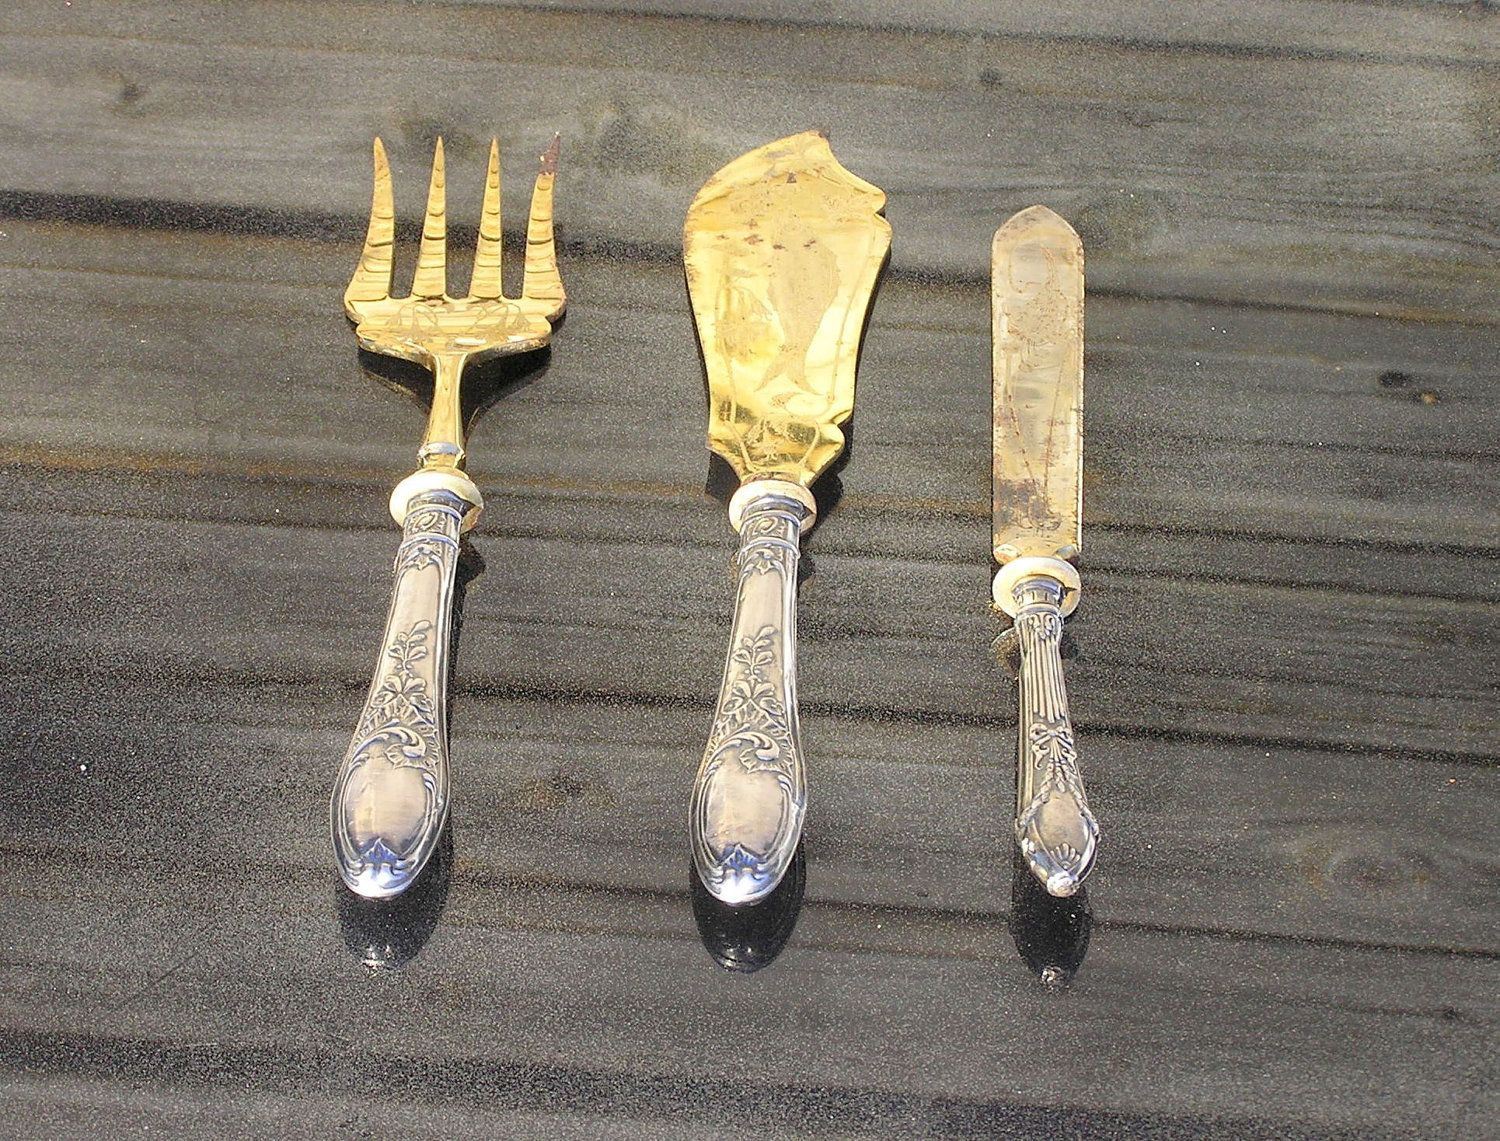 Dating antique forks and knives